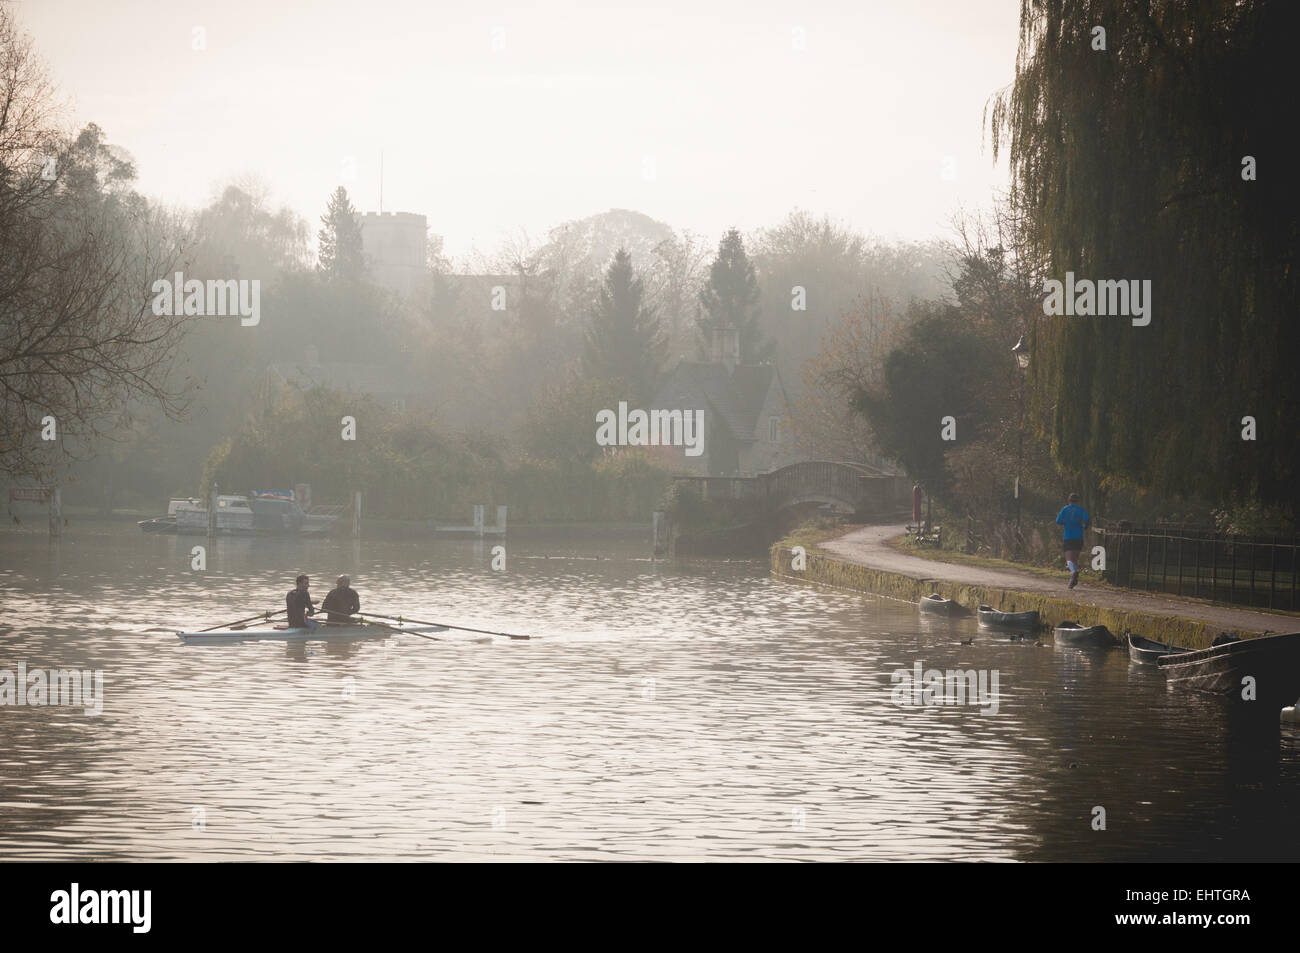 foggy-morning-in-iffley-lock-oxford-EHTGRA.jpg